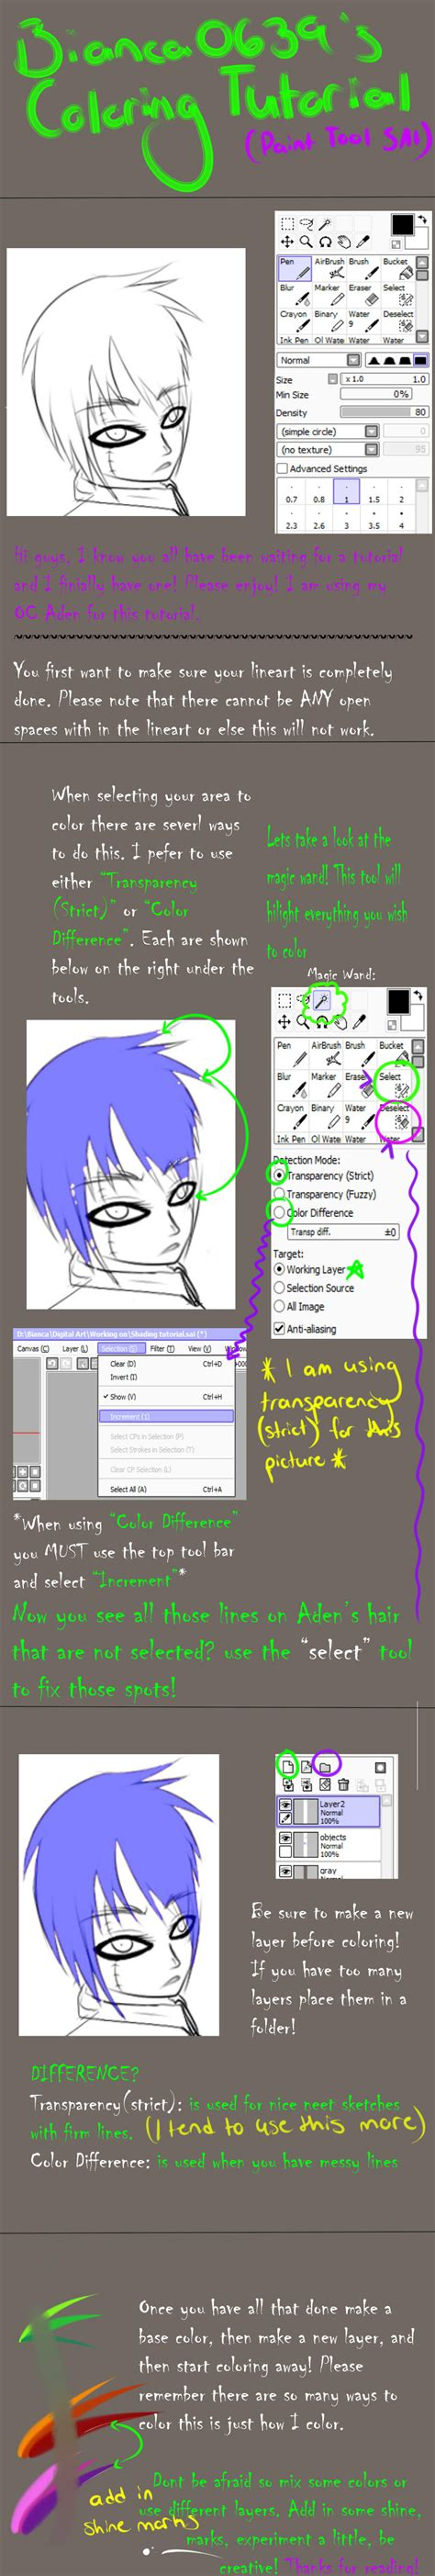 paint tool sai tutorial selection tutorial how to color using paint tool sai by bianca0639